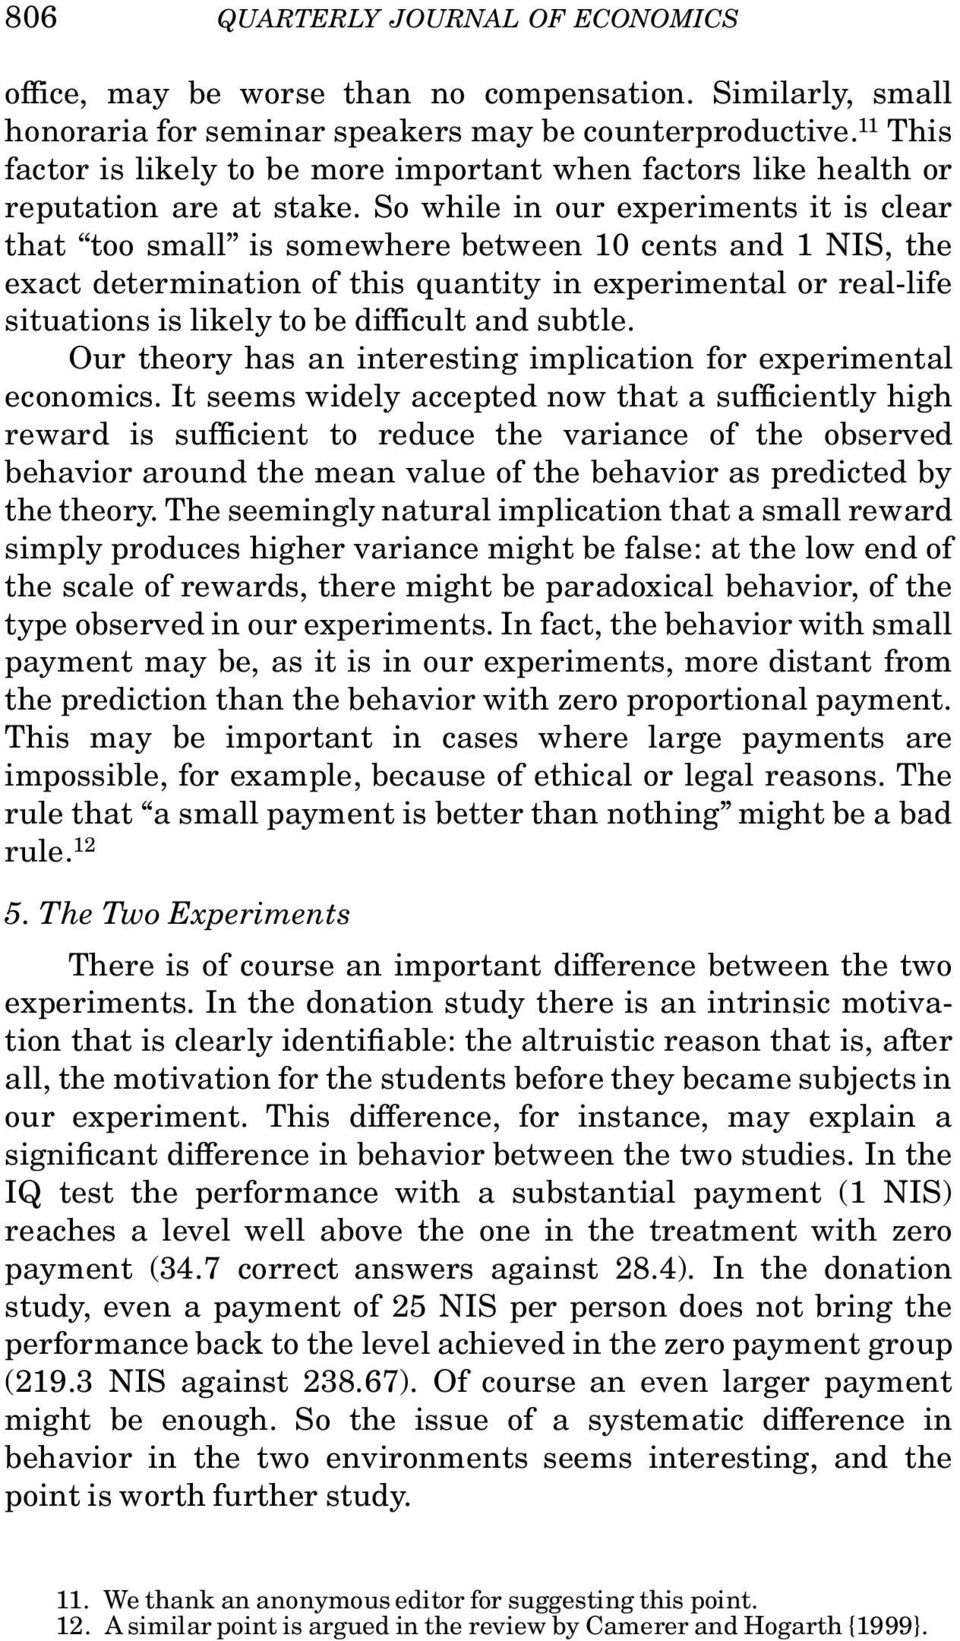 So while in our experiments it is clear that too small is somewhere between 10 cents and 1 NIS, the exact determination of this quantity in experimental or real-life situations is likely to be